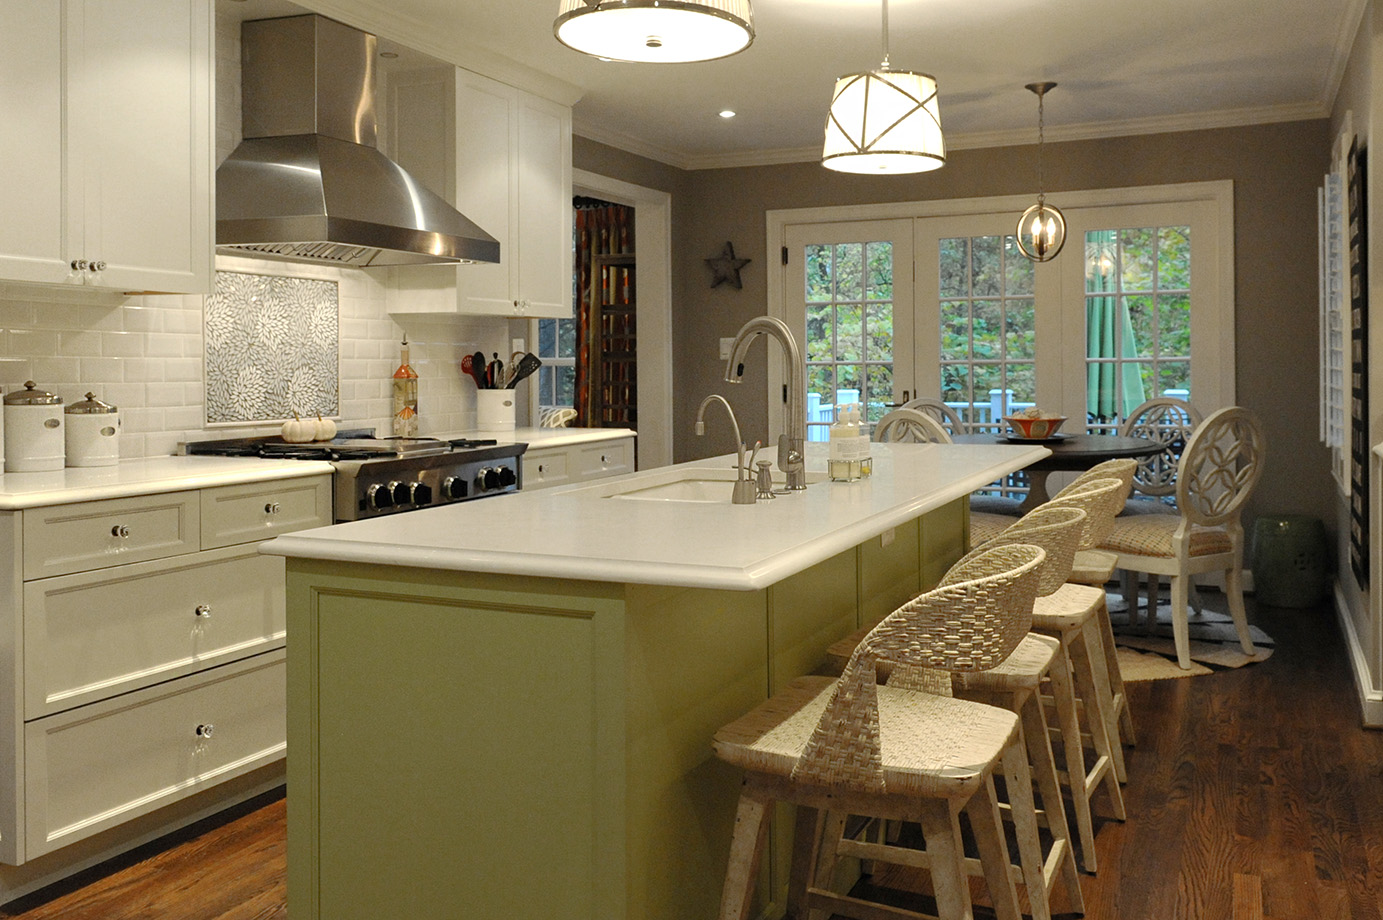 A casual shabby chic meets colonial kitchen